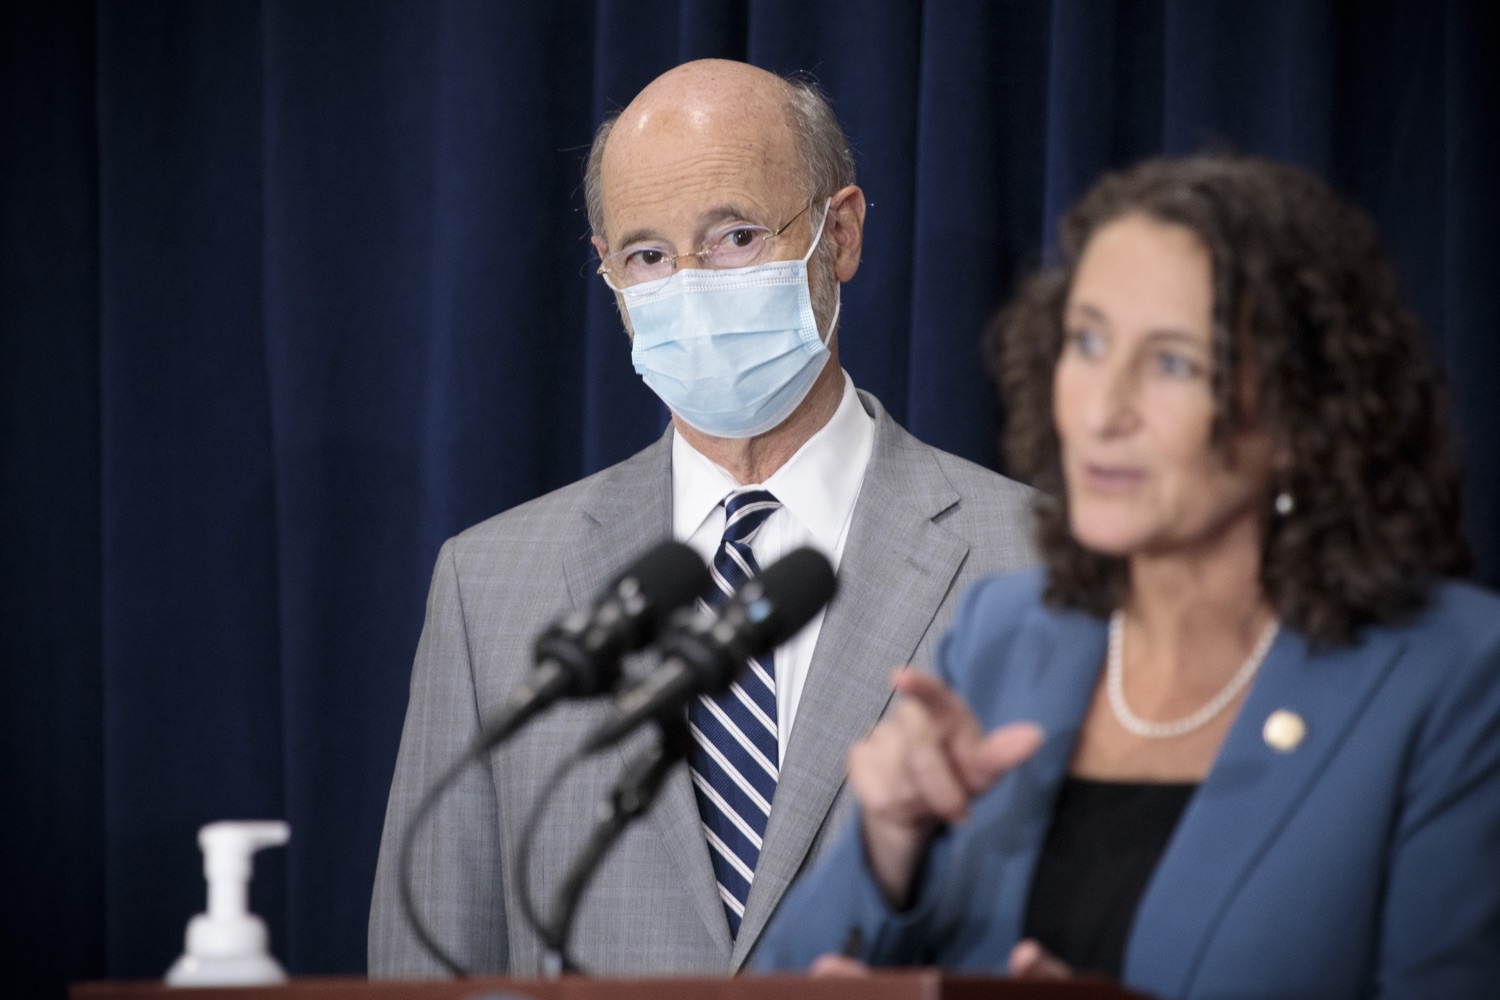 """<a href=""""https://filesource.wostreaming.net/commonwealthofpa/photo/18380_gov_election_update_dz_013.jpg"""" target=""""_blank"""">⇣Download Photo<br></a>Pennsylvania Governor Tom Wolf watches as Secretary of State Kathy Boockvar speaks to the press.  Governor Tom Wolf and Pennsylvania Secretary of State Kathy Boockvar gave an update on the election process in Pennsylvania. NOVEMBER 04, 2020 - HARRISBURG, PA"""